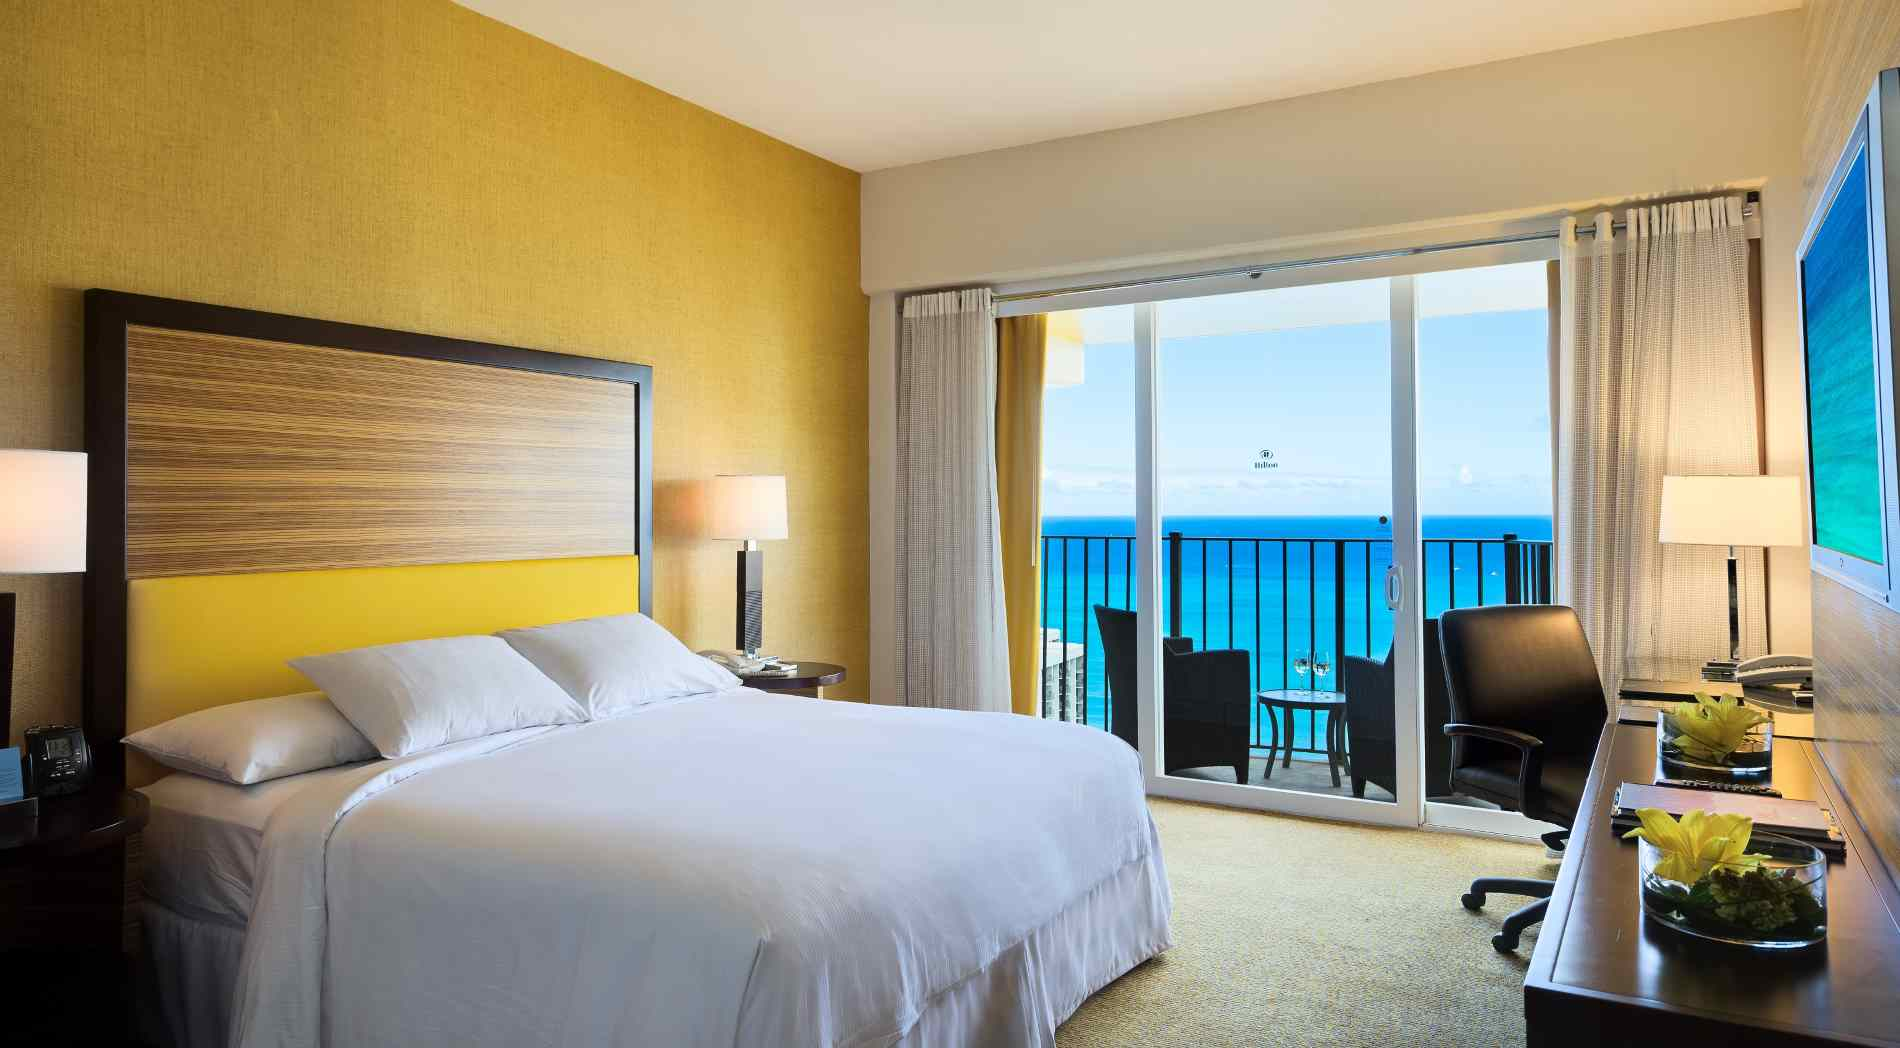 View of a King Room with ocean view.